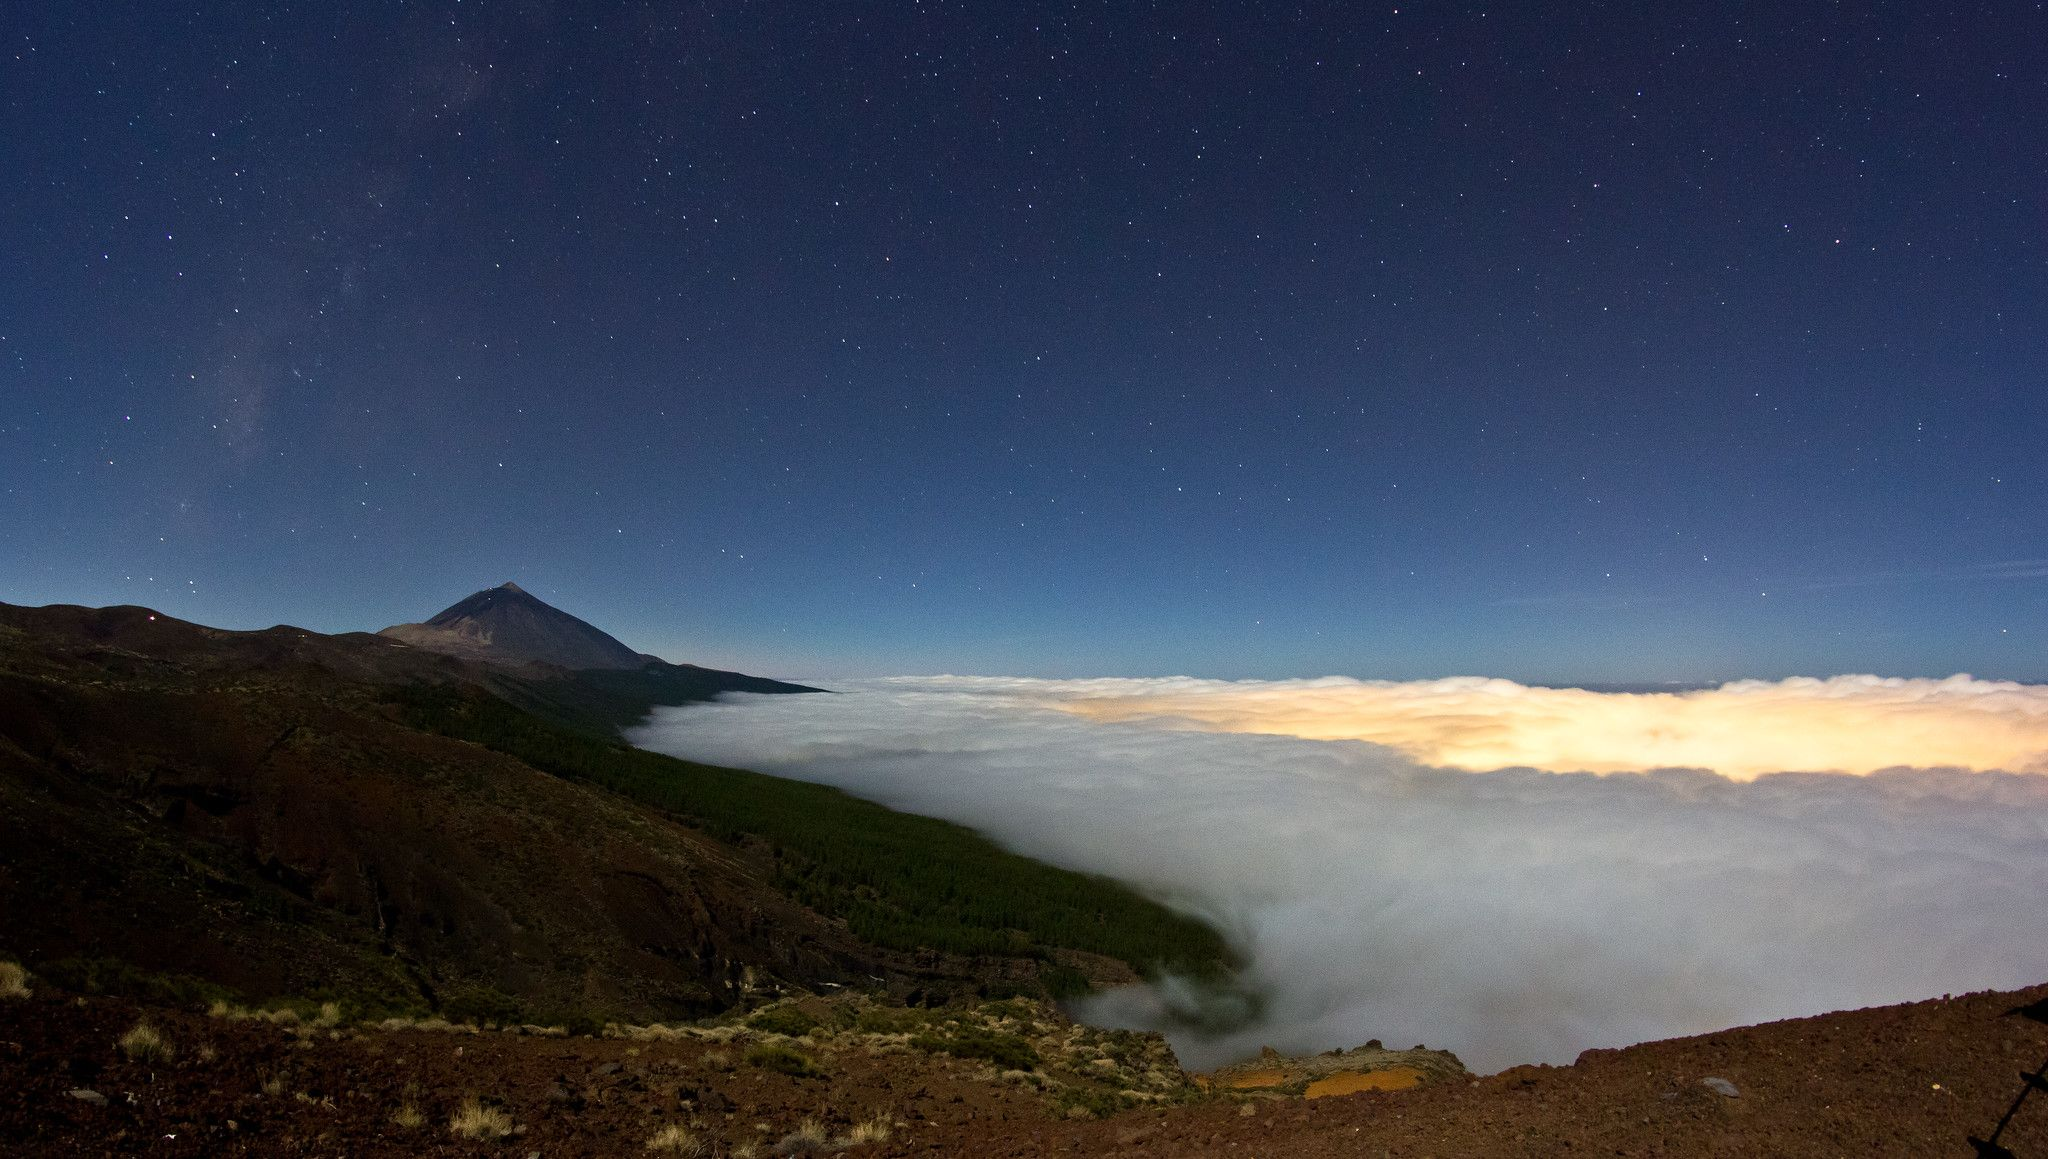 Moonlit scene of Tenerife with Teide and Milky Way